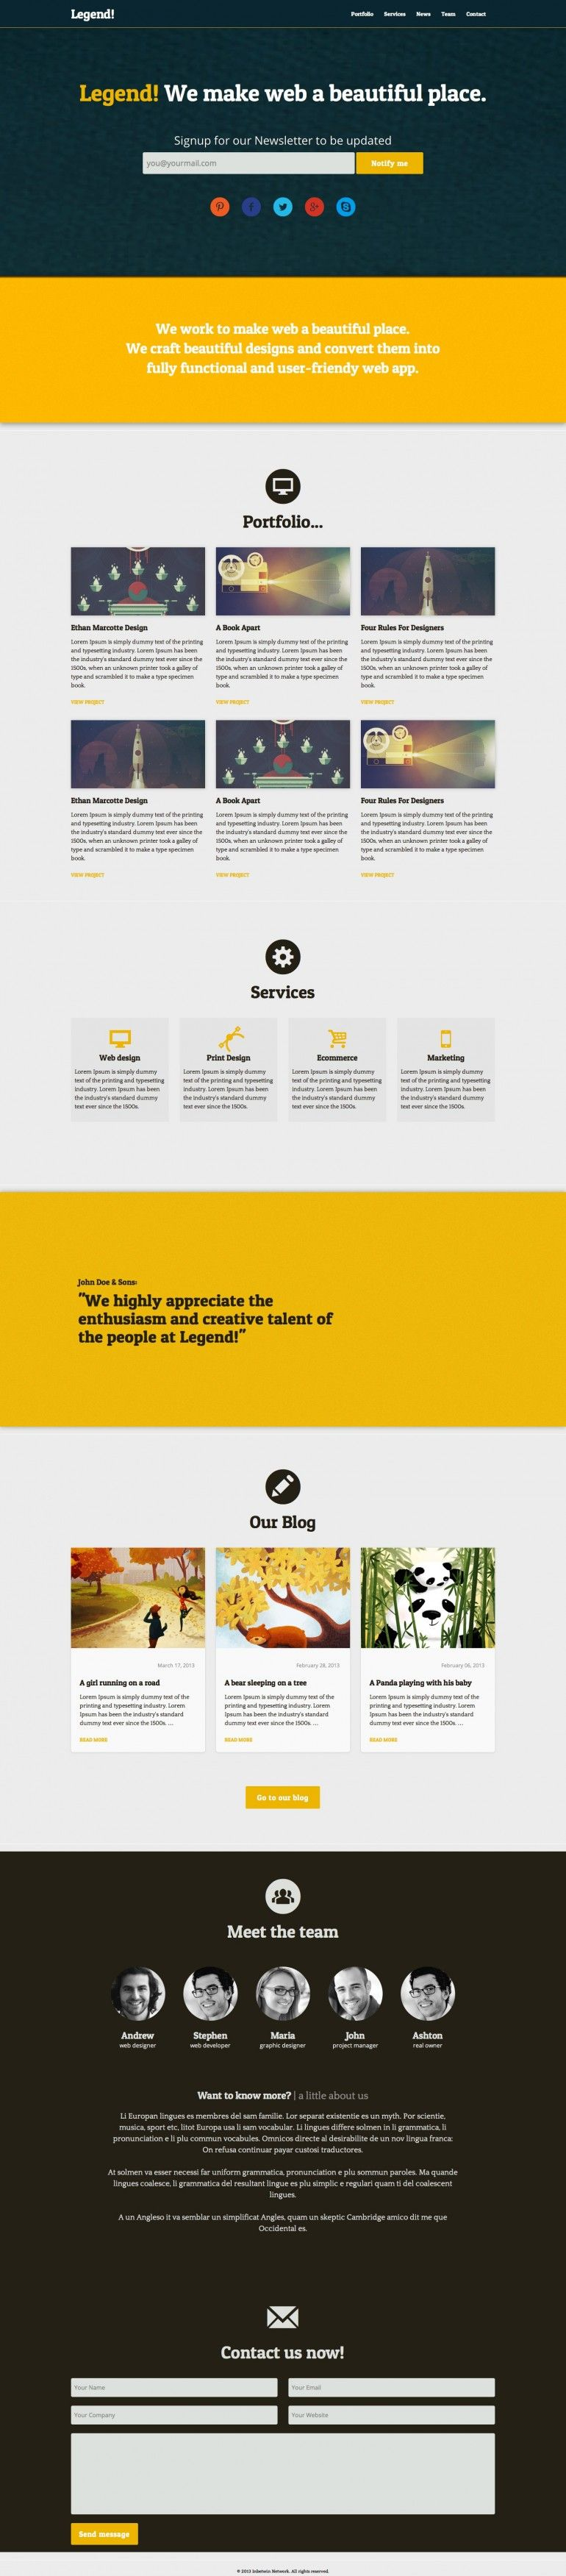 Legend - One Page Bootstrap Template | onepage | Pinterest